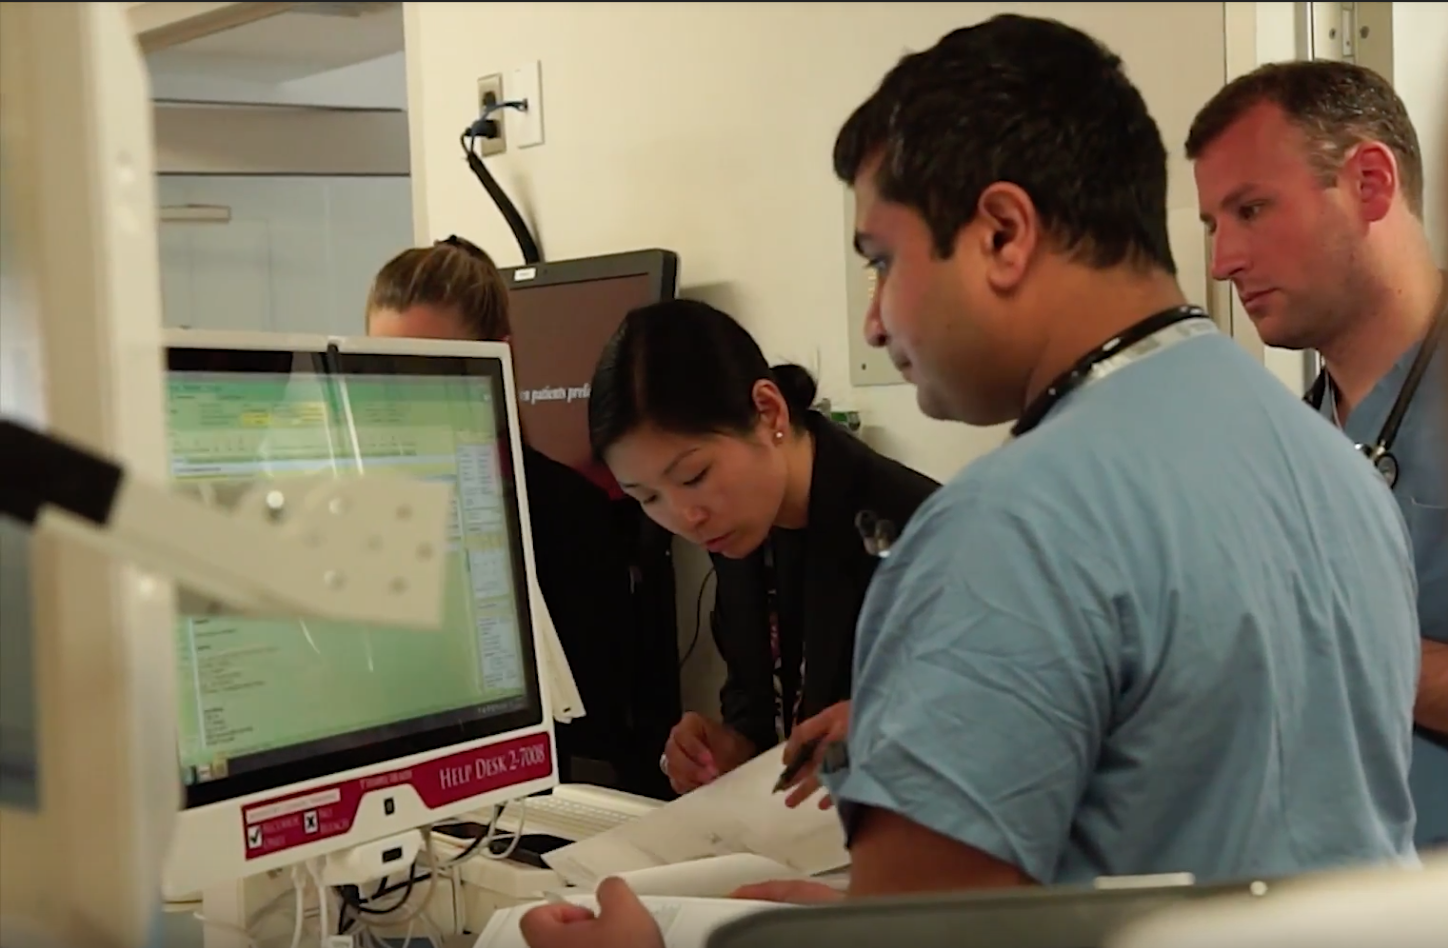 Temple University Health System: Revolutionizing Communication to